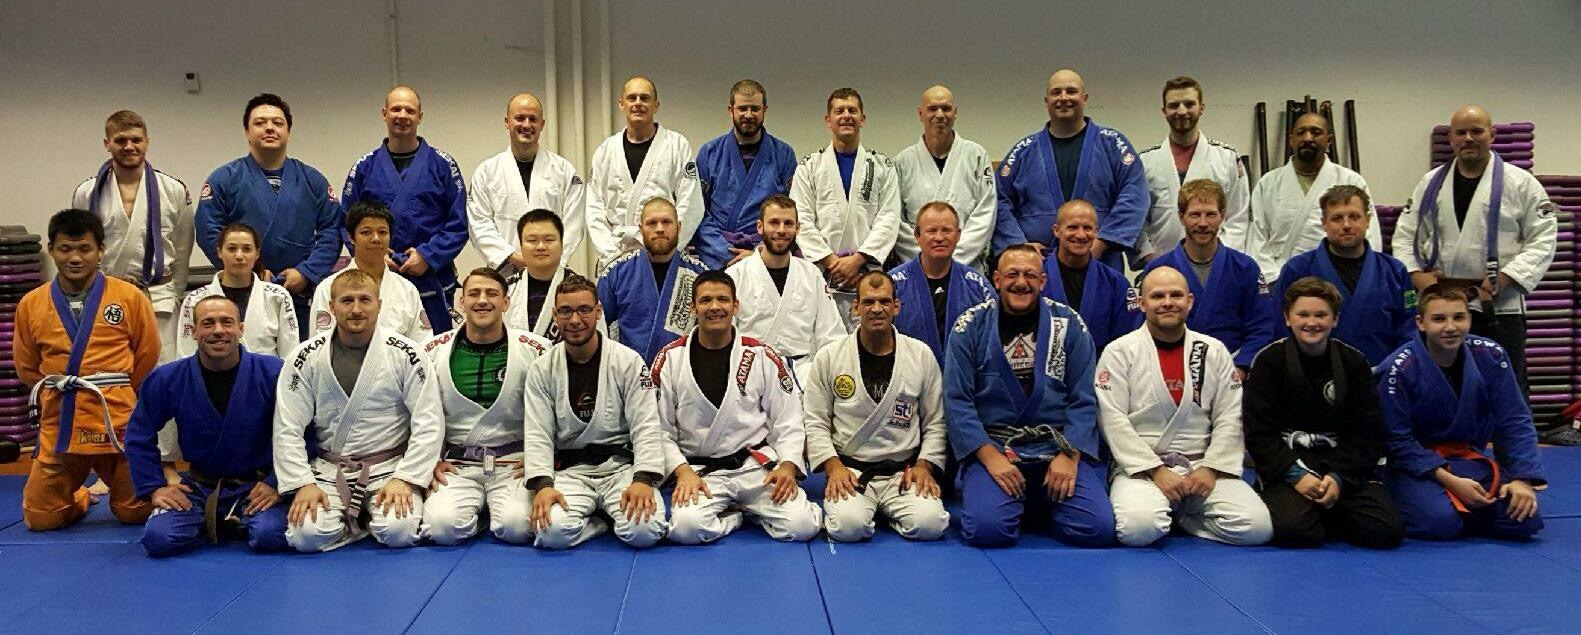 Megaton Diaz BJJ Seminar May 4th 2014